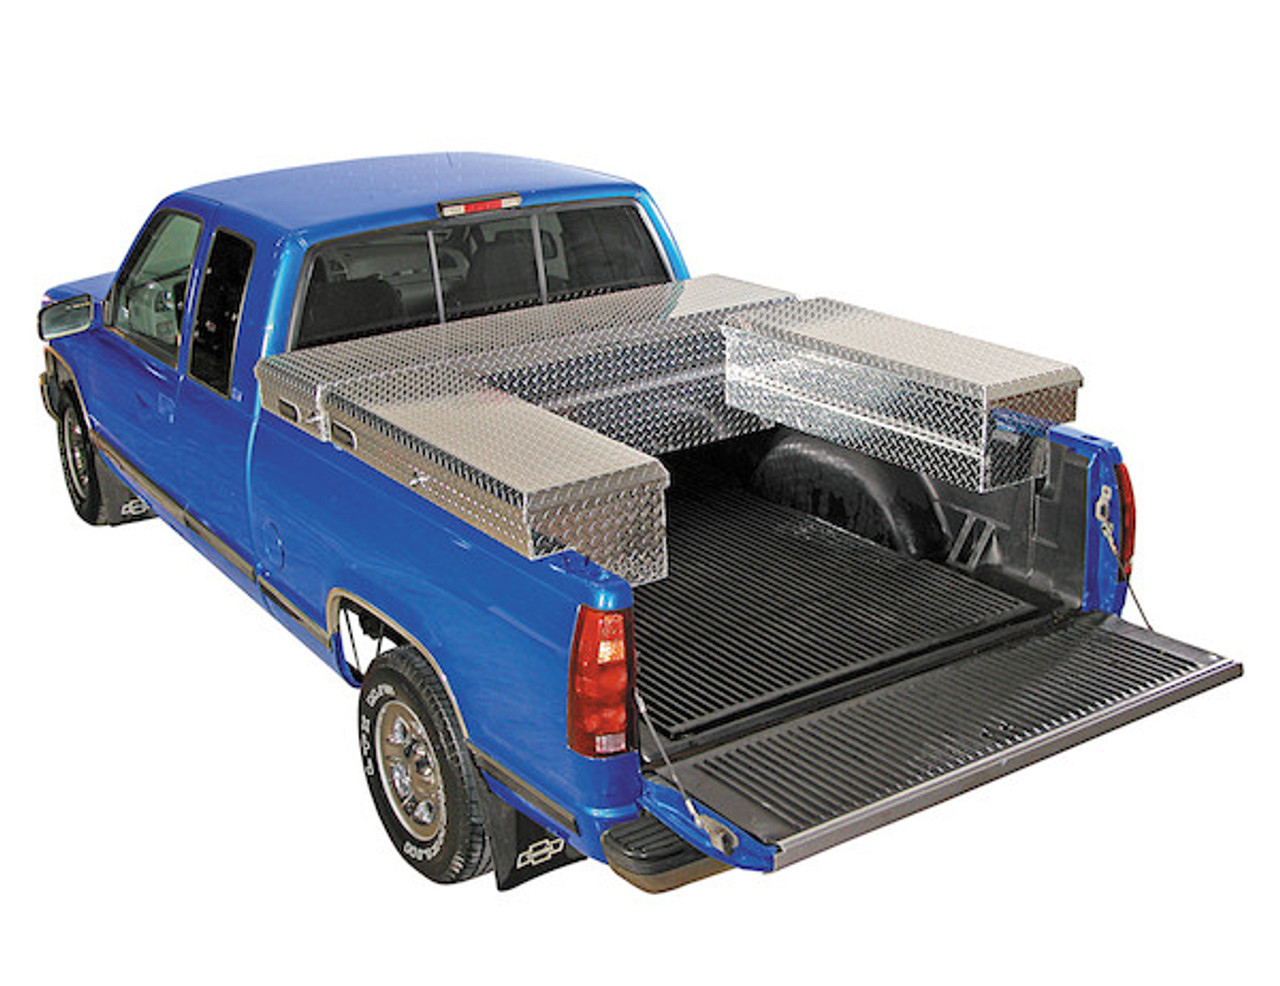 1709315 BUYERS PRODUCTS DIAMOND TREAD ALUMINUM CROSSOVER TRUCK TOOLBOX